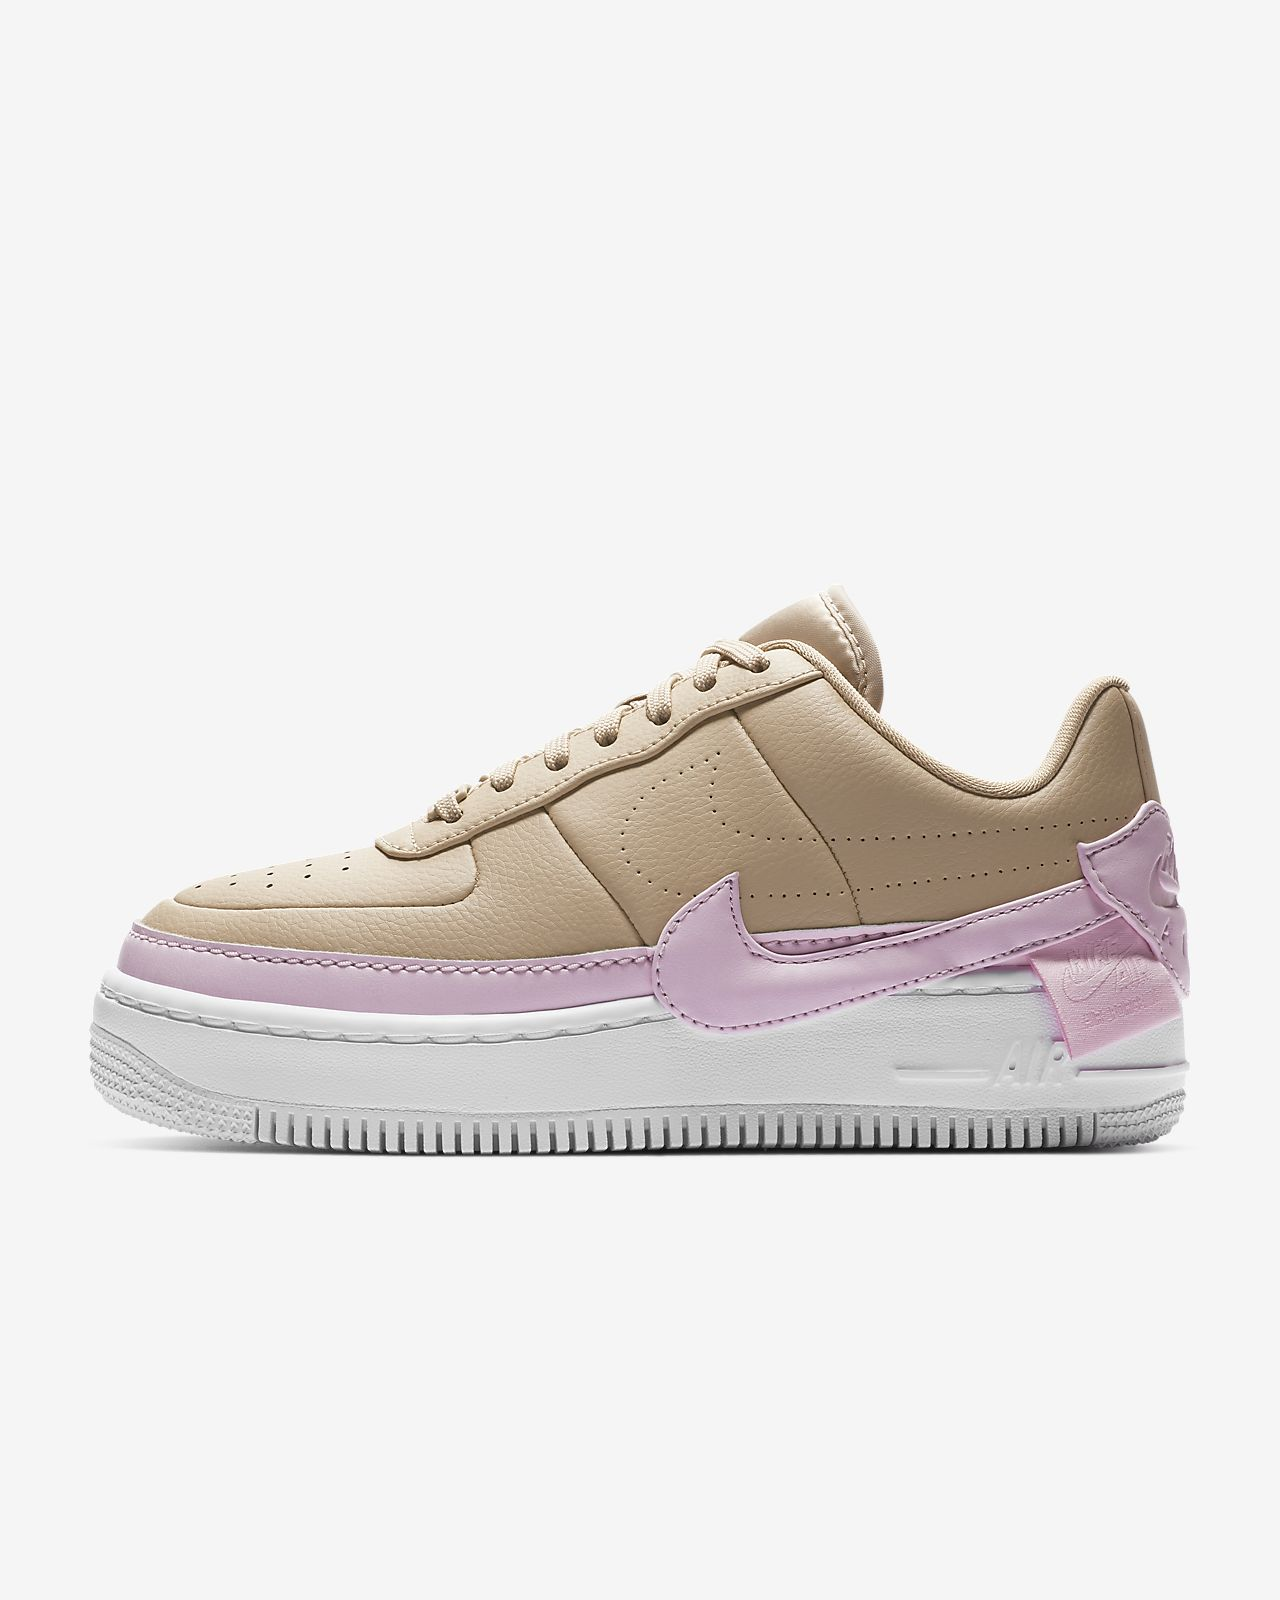 new style 325a0 ea86a Chaussure Nike Air Force 1 Jester XX pour Femme ...